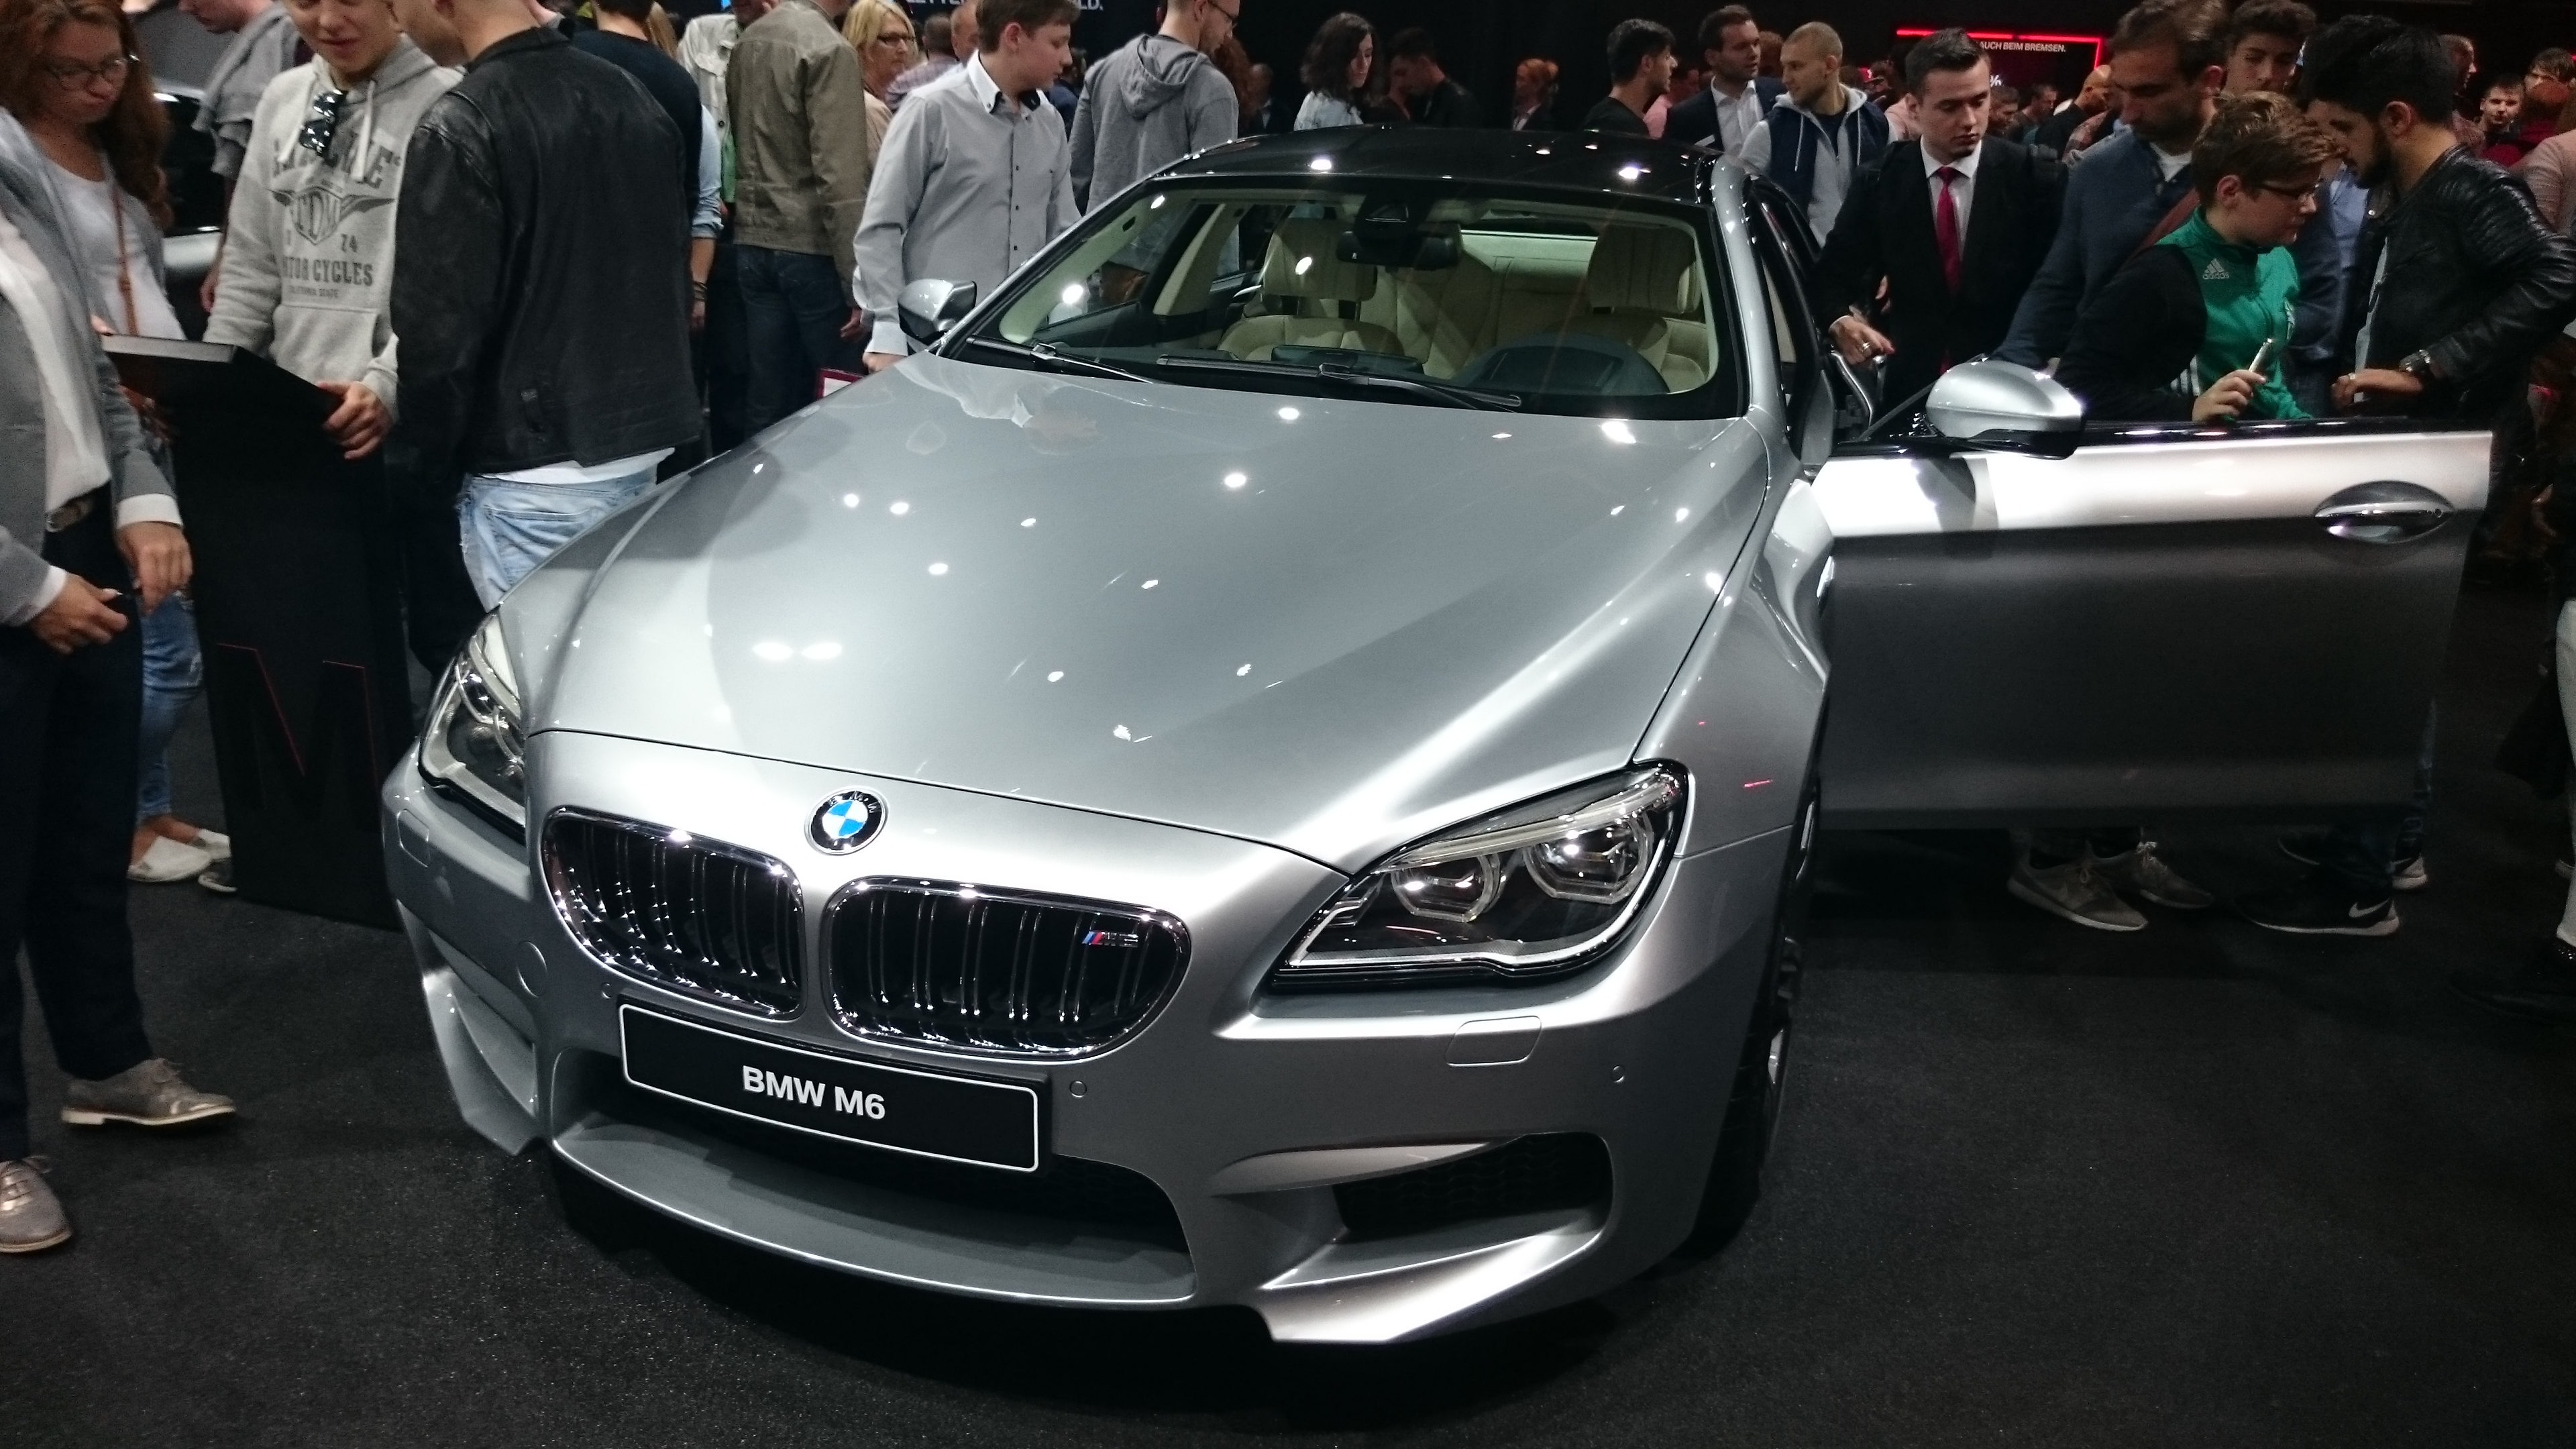 Foto normal del BMW M6  #VidePan en #IAA2015